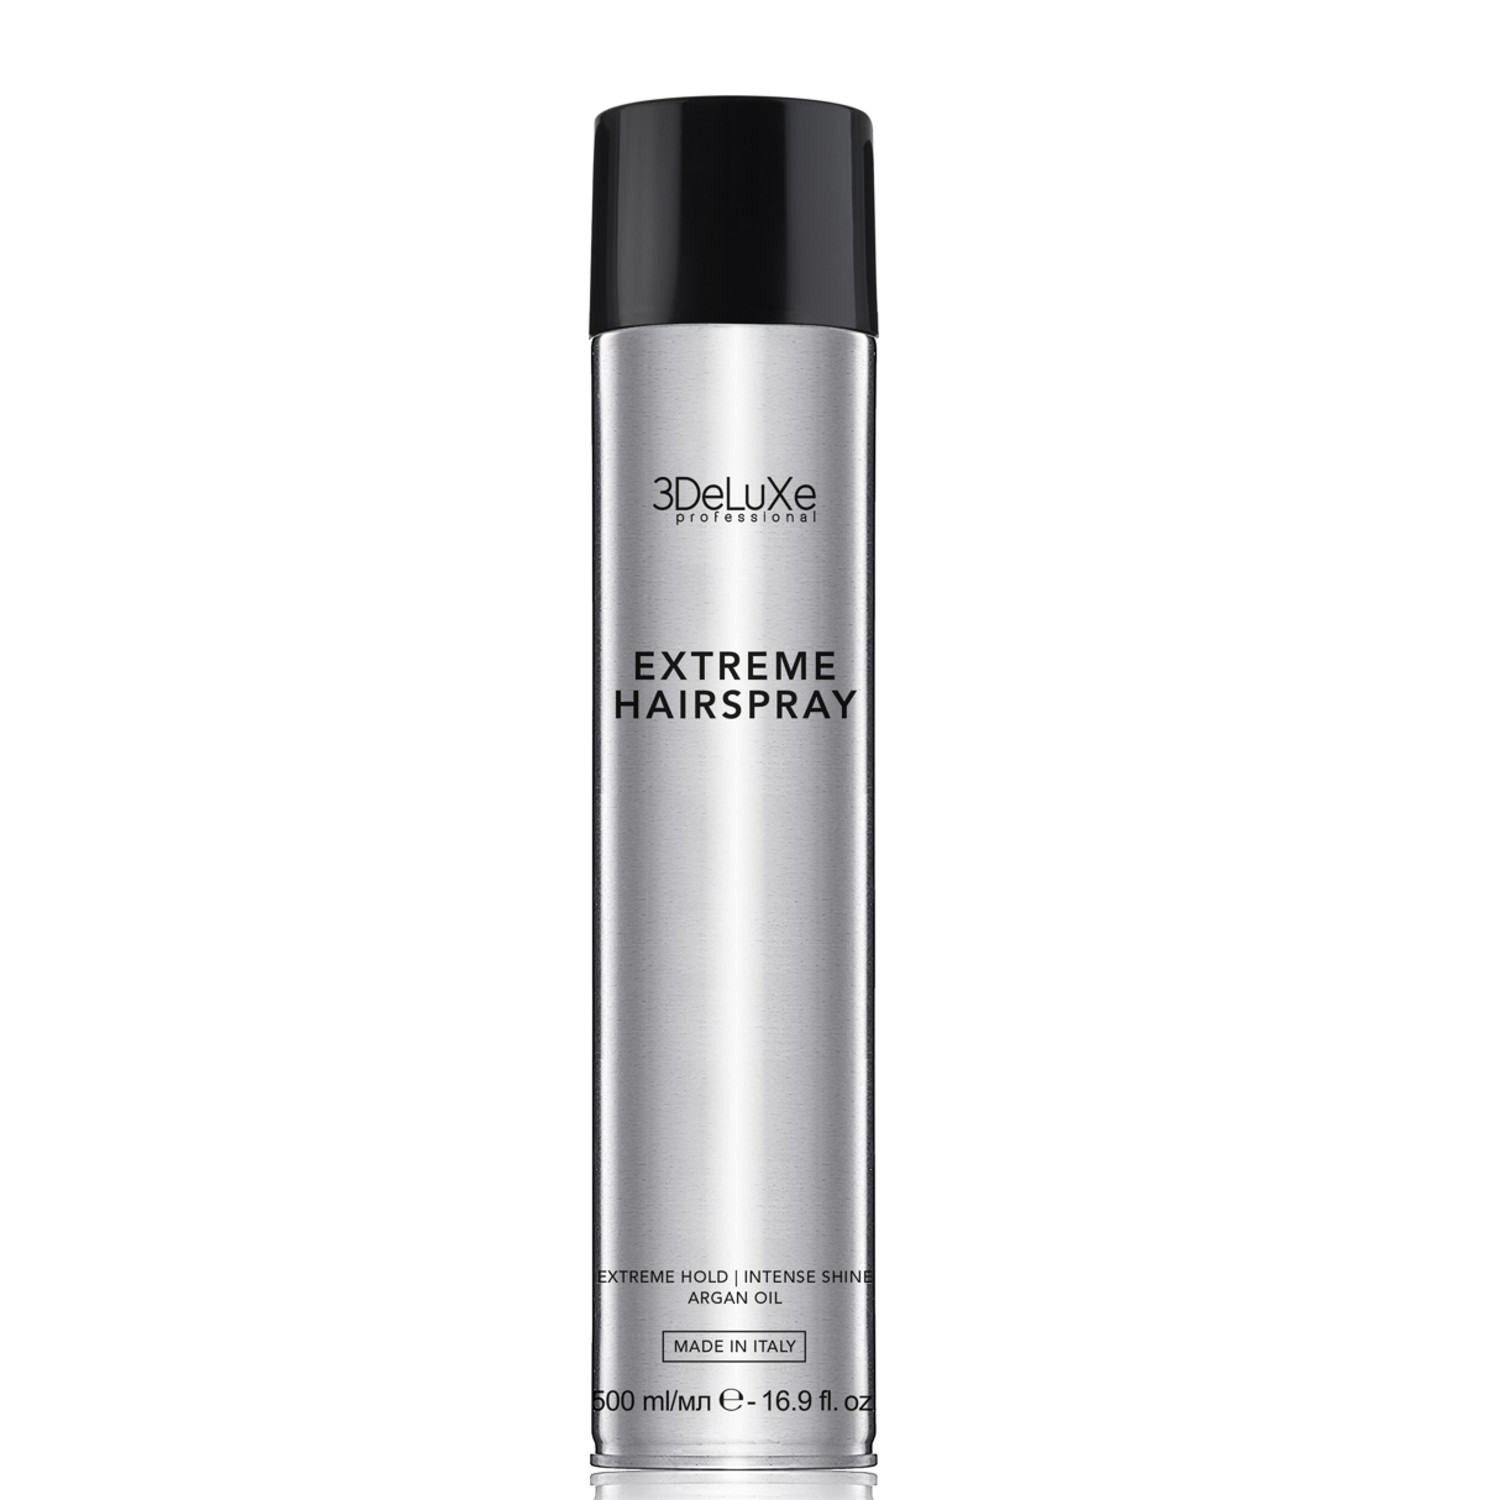 3DeLuXe Professional EXTREME Hairspray 500 ml